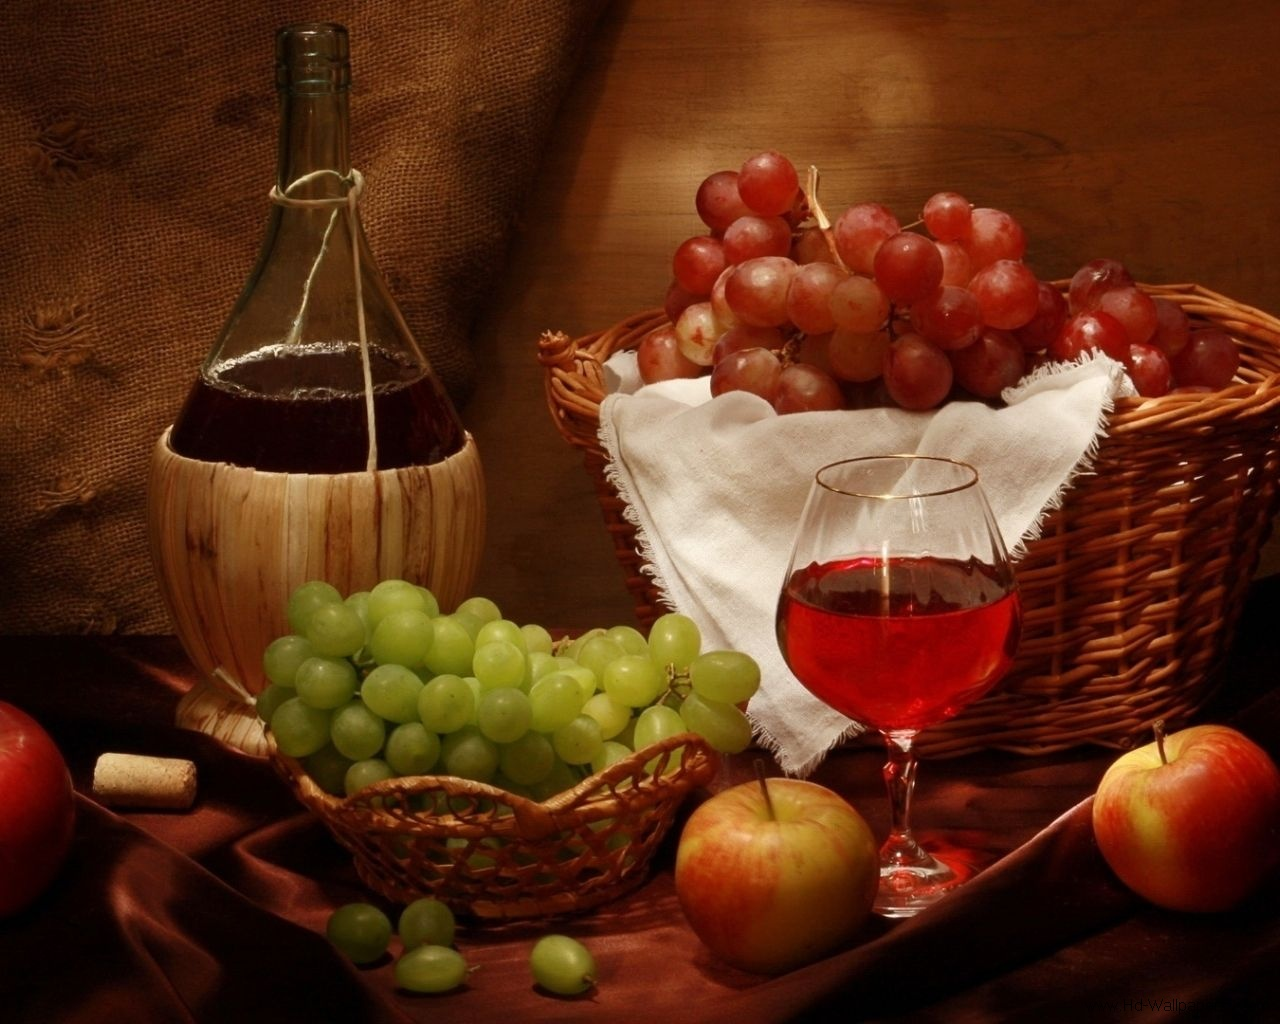 Food and Drink Hd Wallpapers Photos Food and Drink Hd Wallpapers 1280x1024